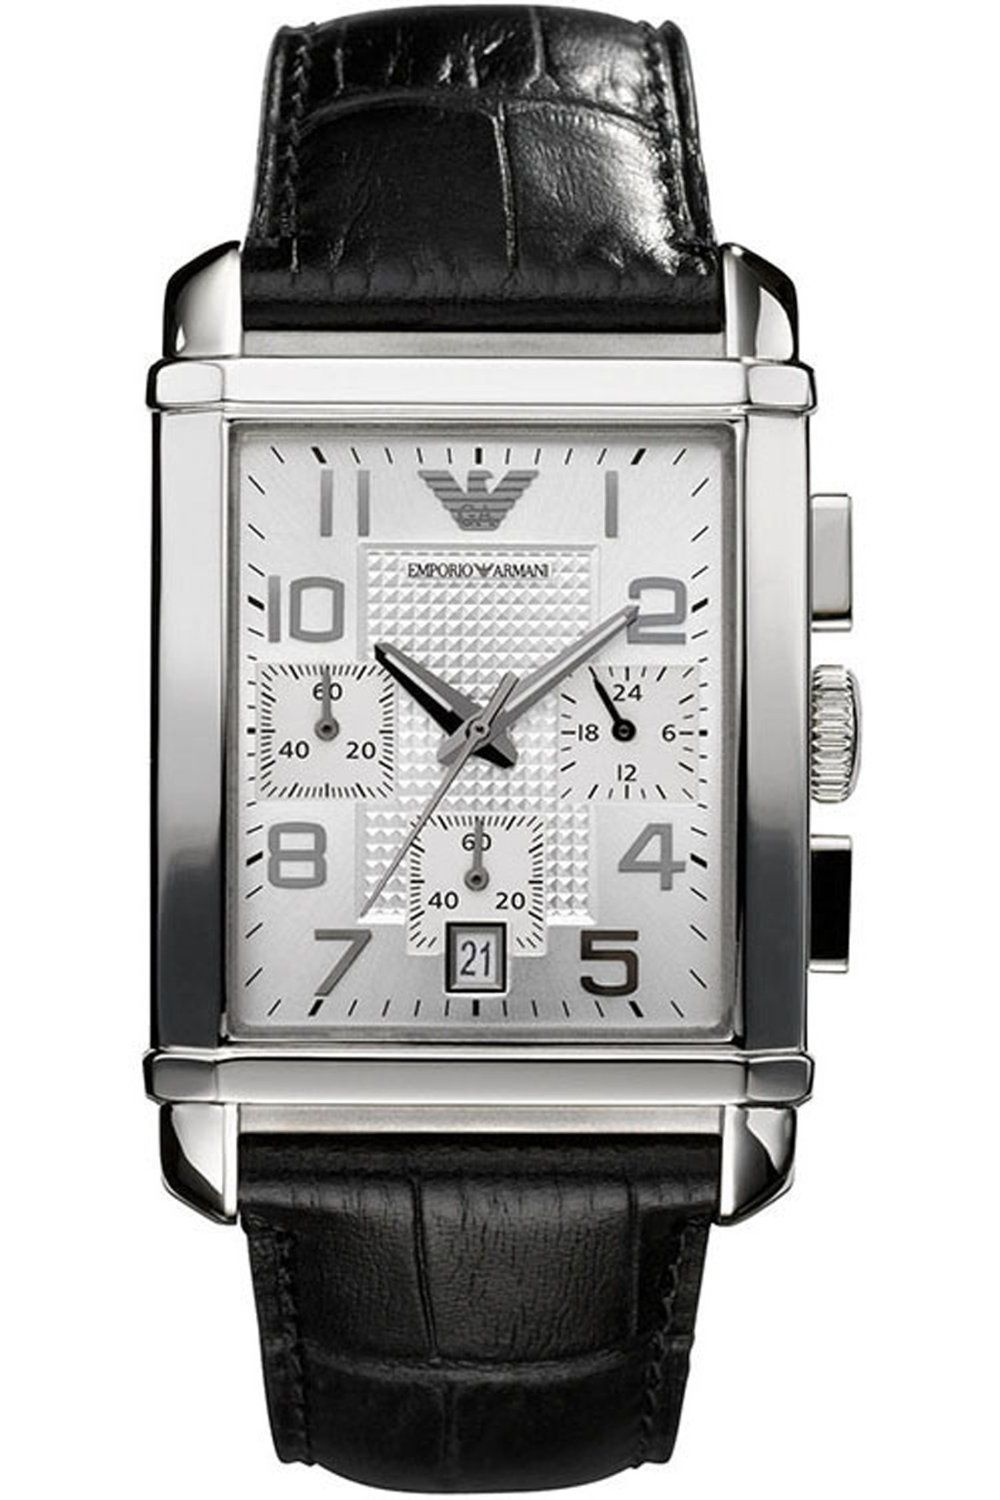 ffd4b4c248dd Emporio Armani Men s AR0333 Classic Silver Chronograph Dial Watch  Watches   Amazon.com